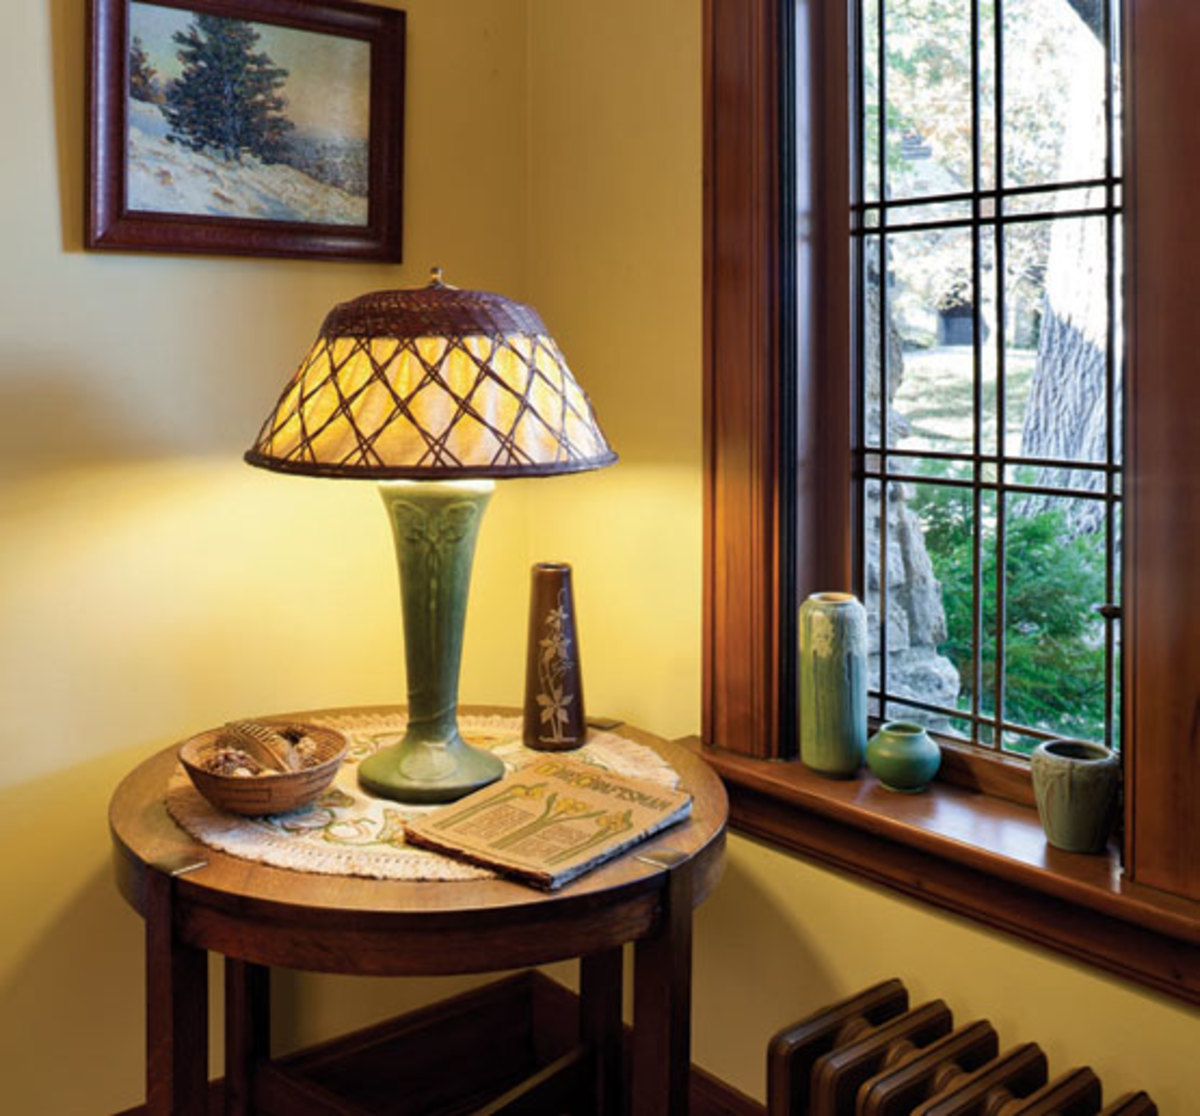 A 1910 issue of The Craftsman with objects of the period on a Gustav Stickley lamp table. Photo by Josh Beeman.